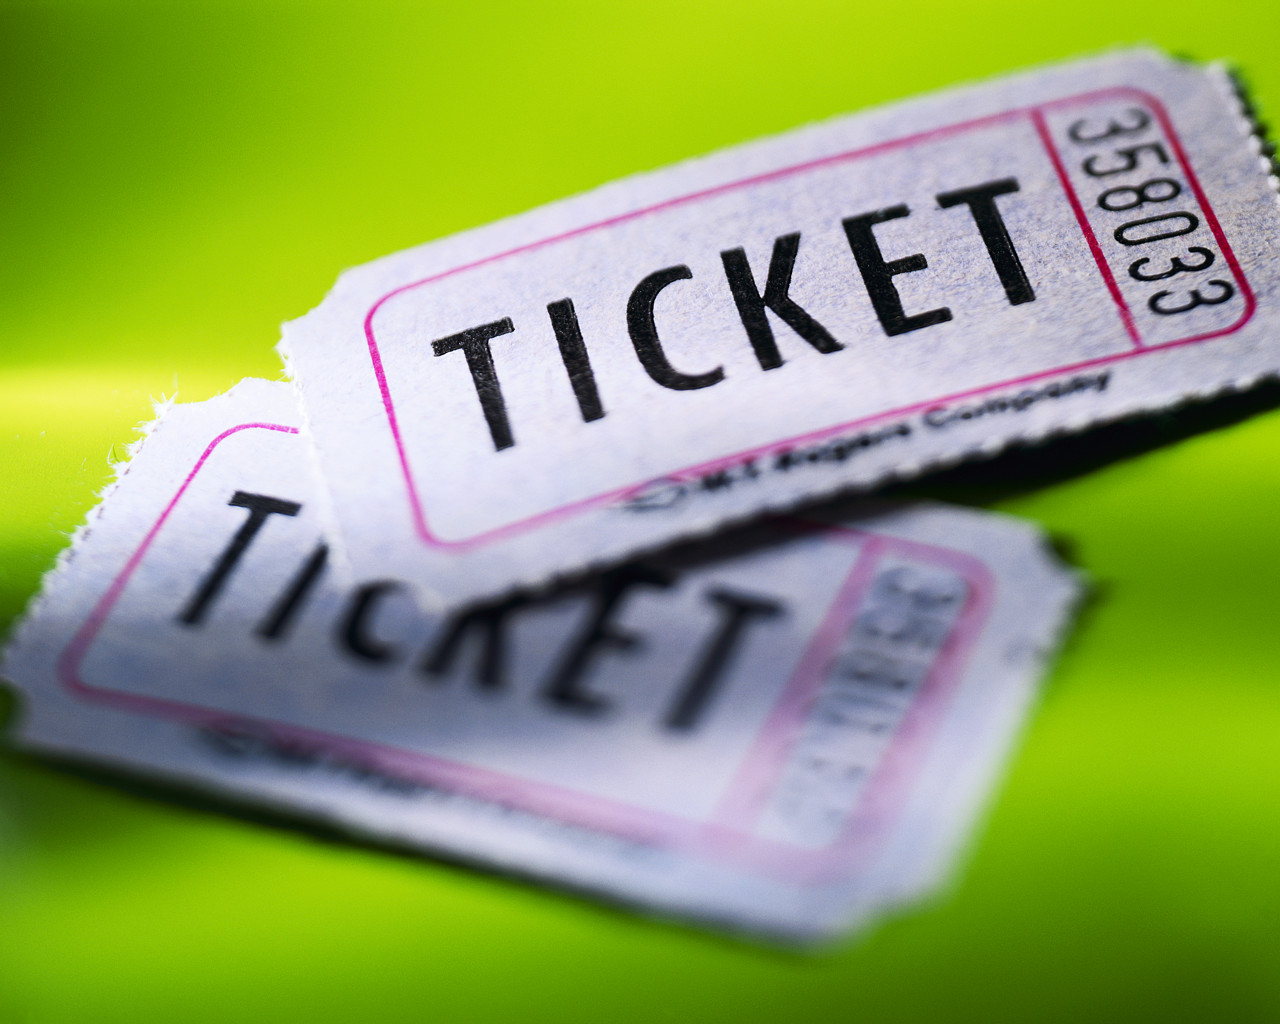 May 5: Ticket Sales at CSDA